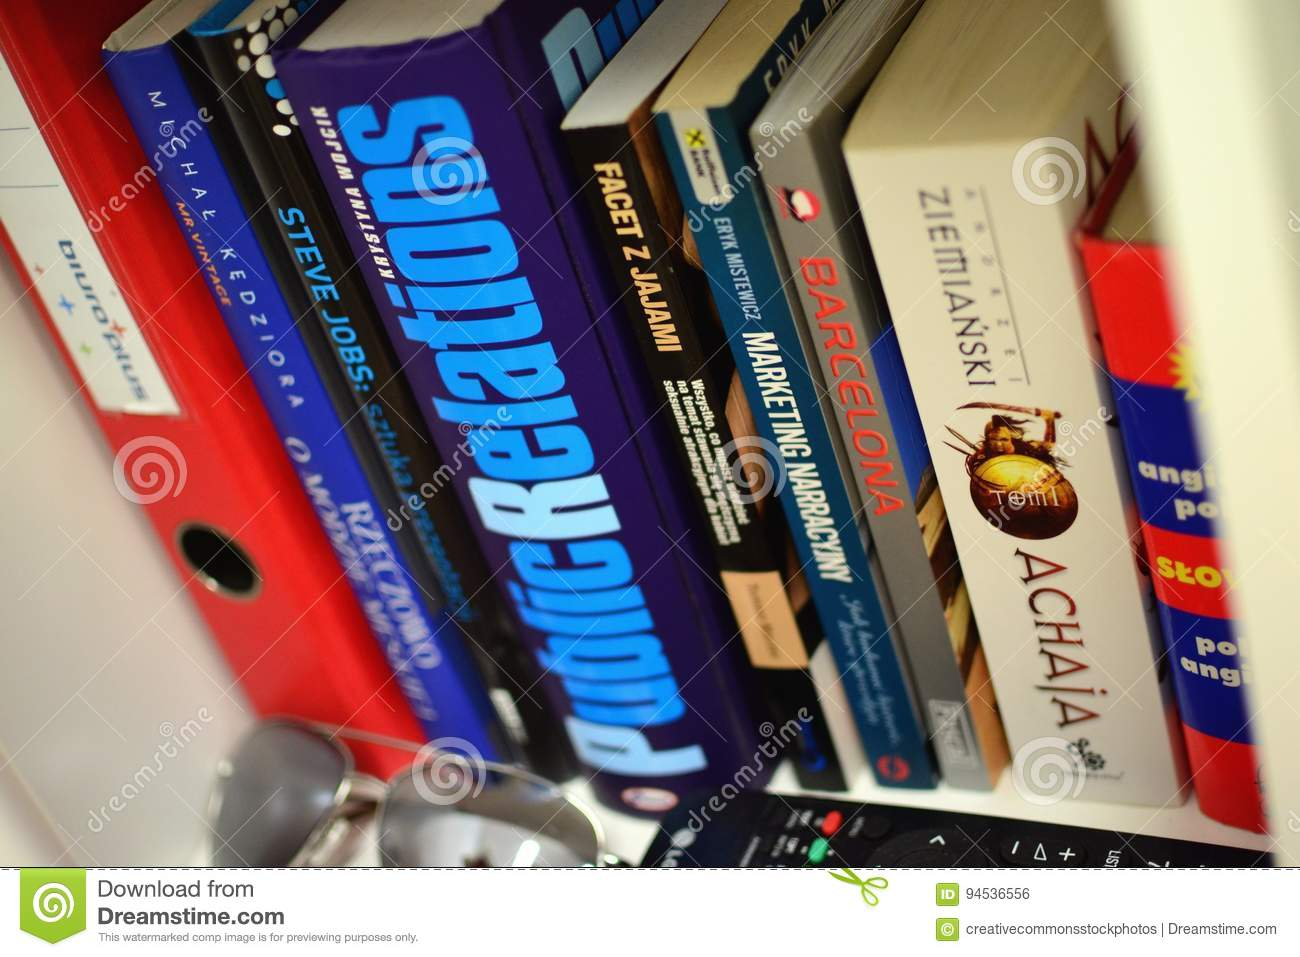 A Bookshelf With Books And Other Items